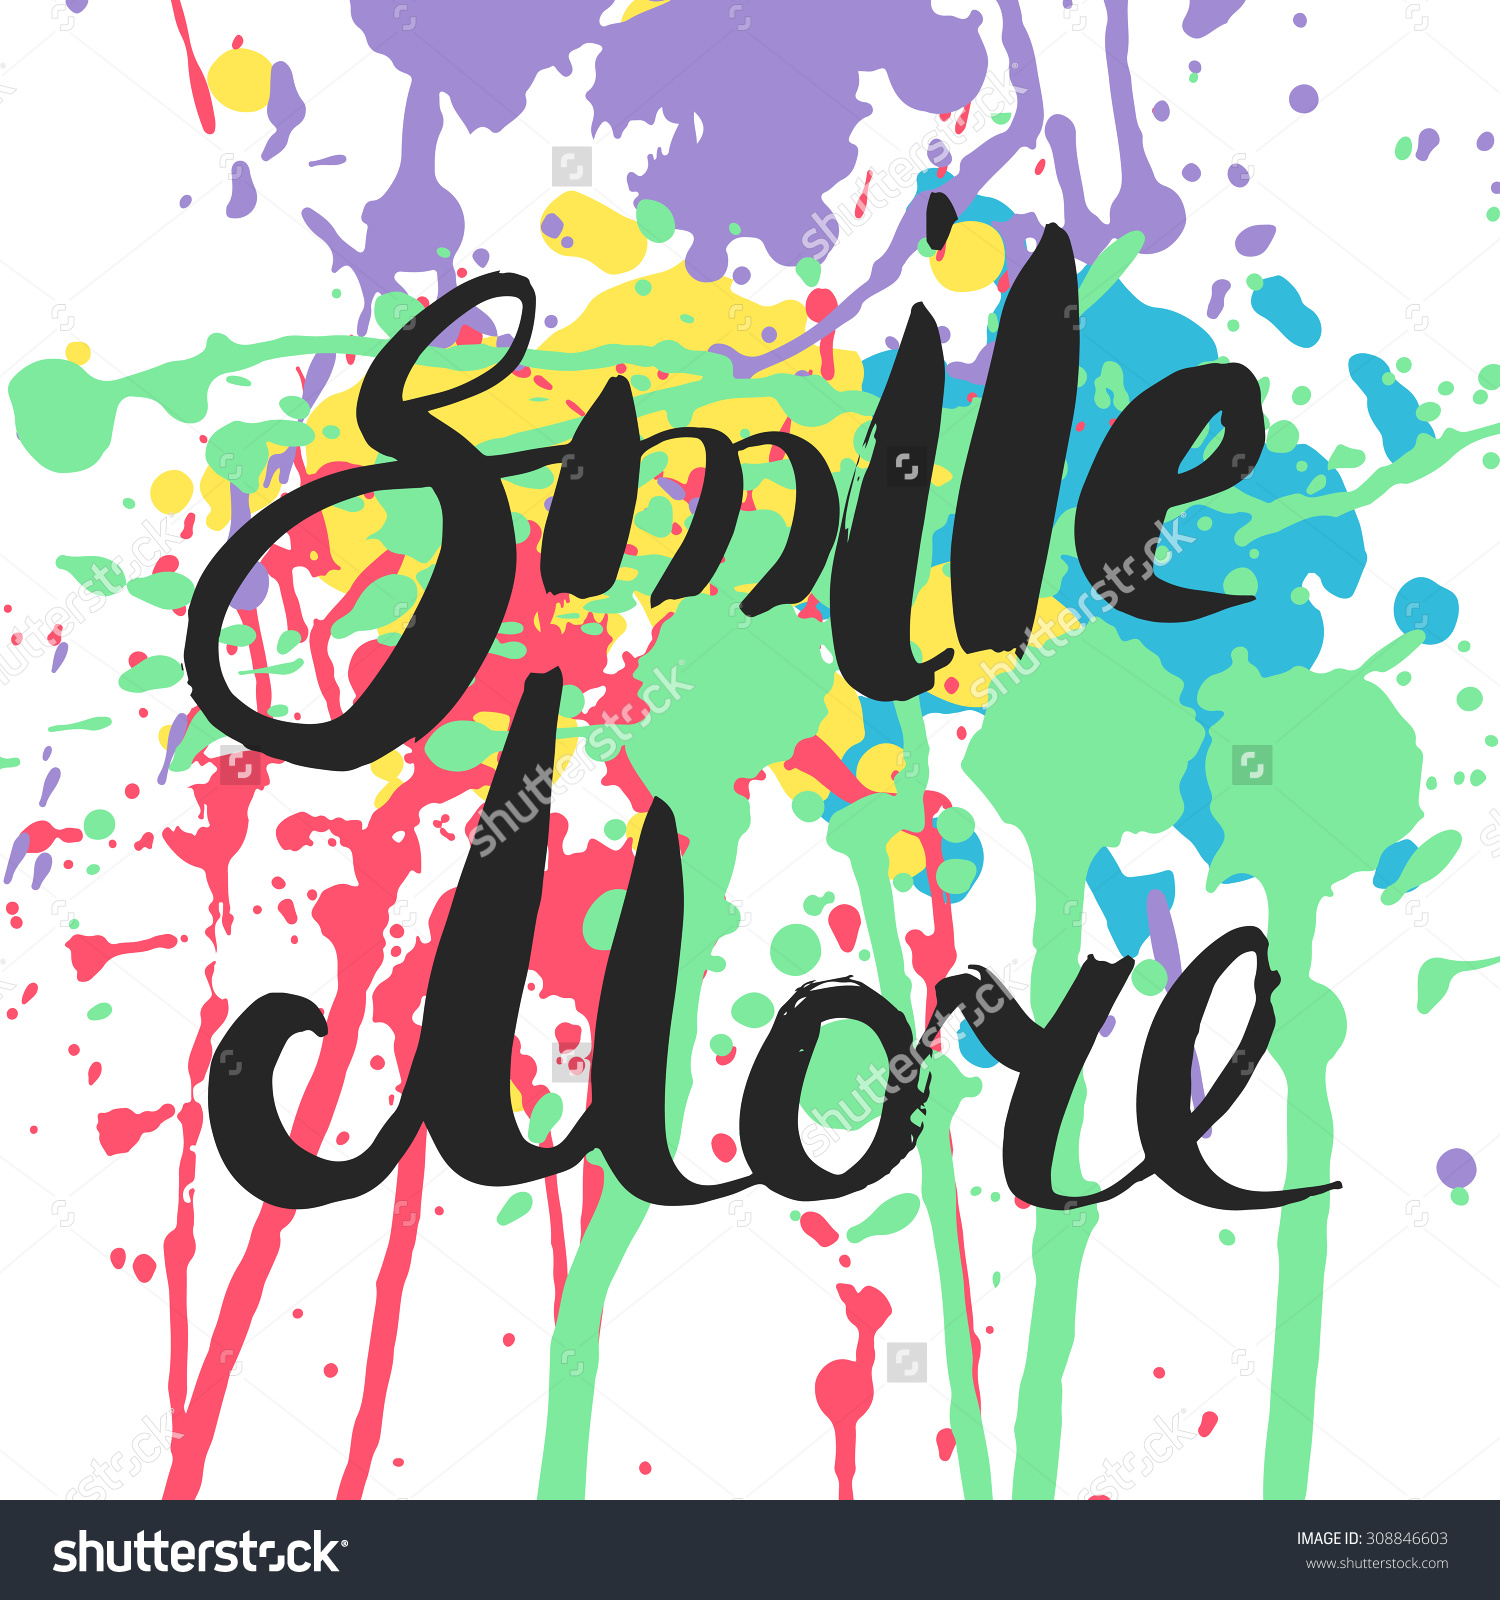 Smile more clipart clipground for More clipart